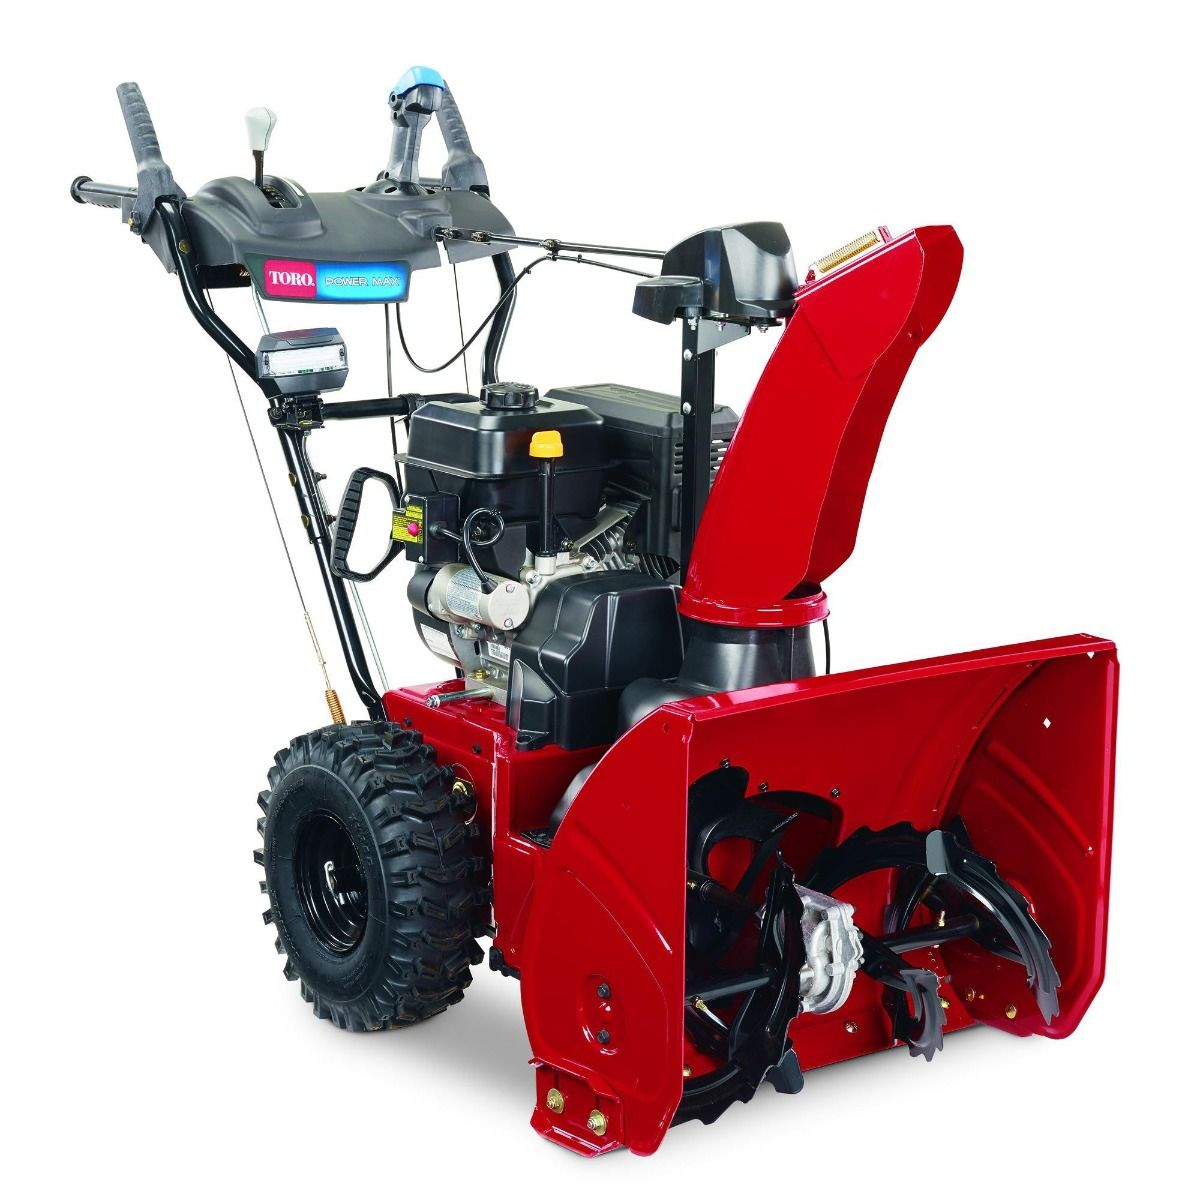 Toro 37799 Power Max 826 OXE Snowblower